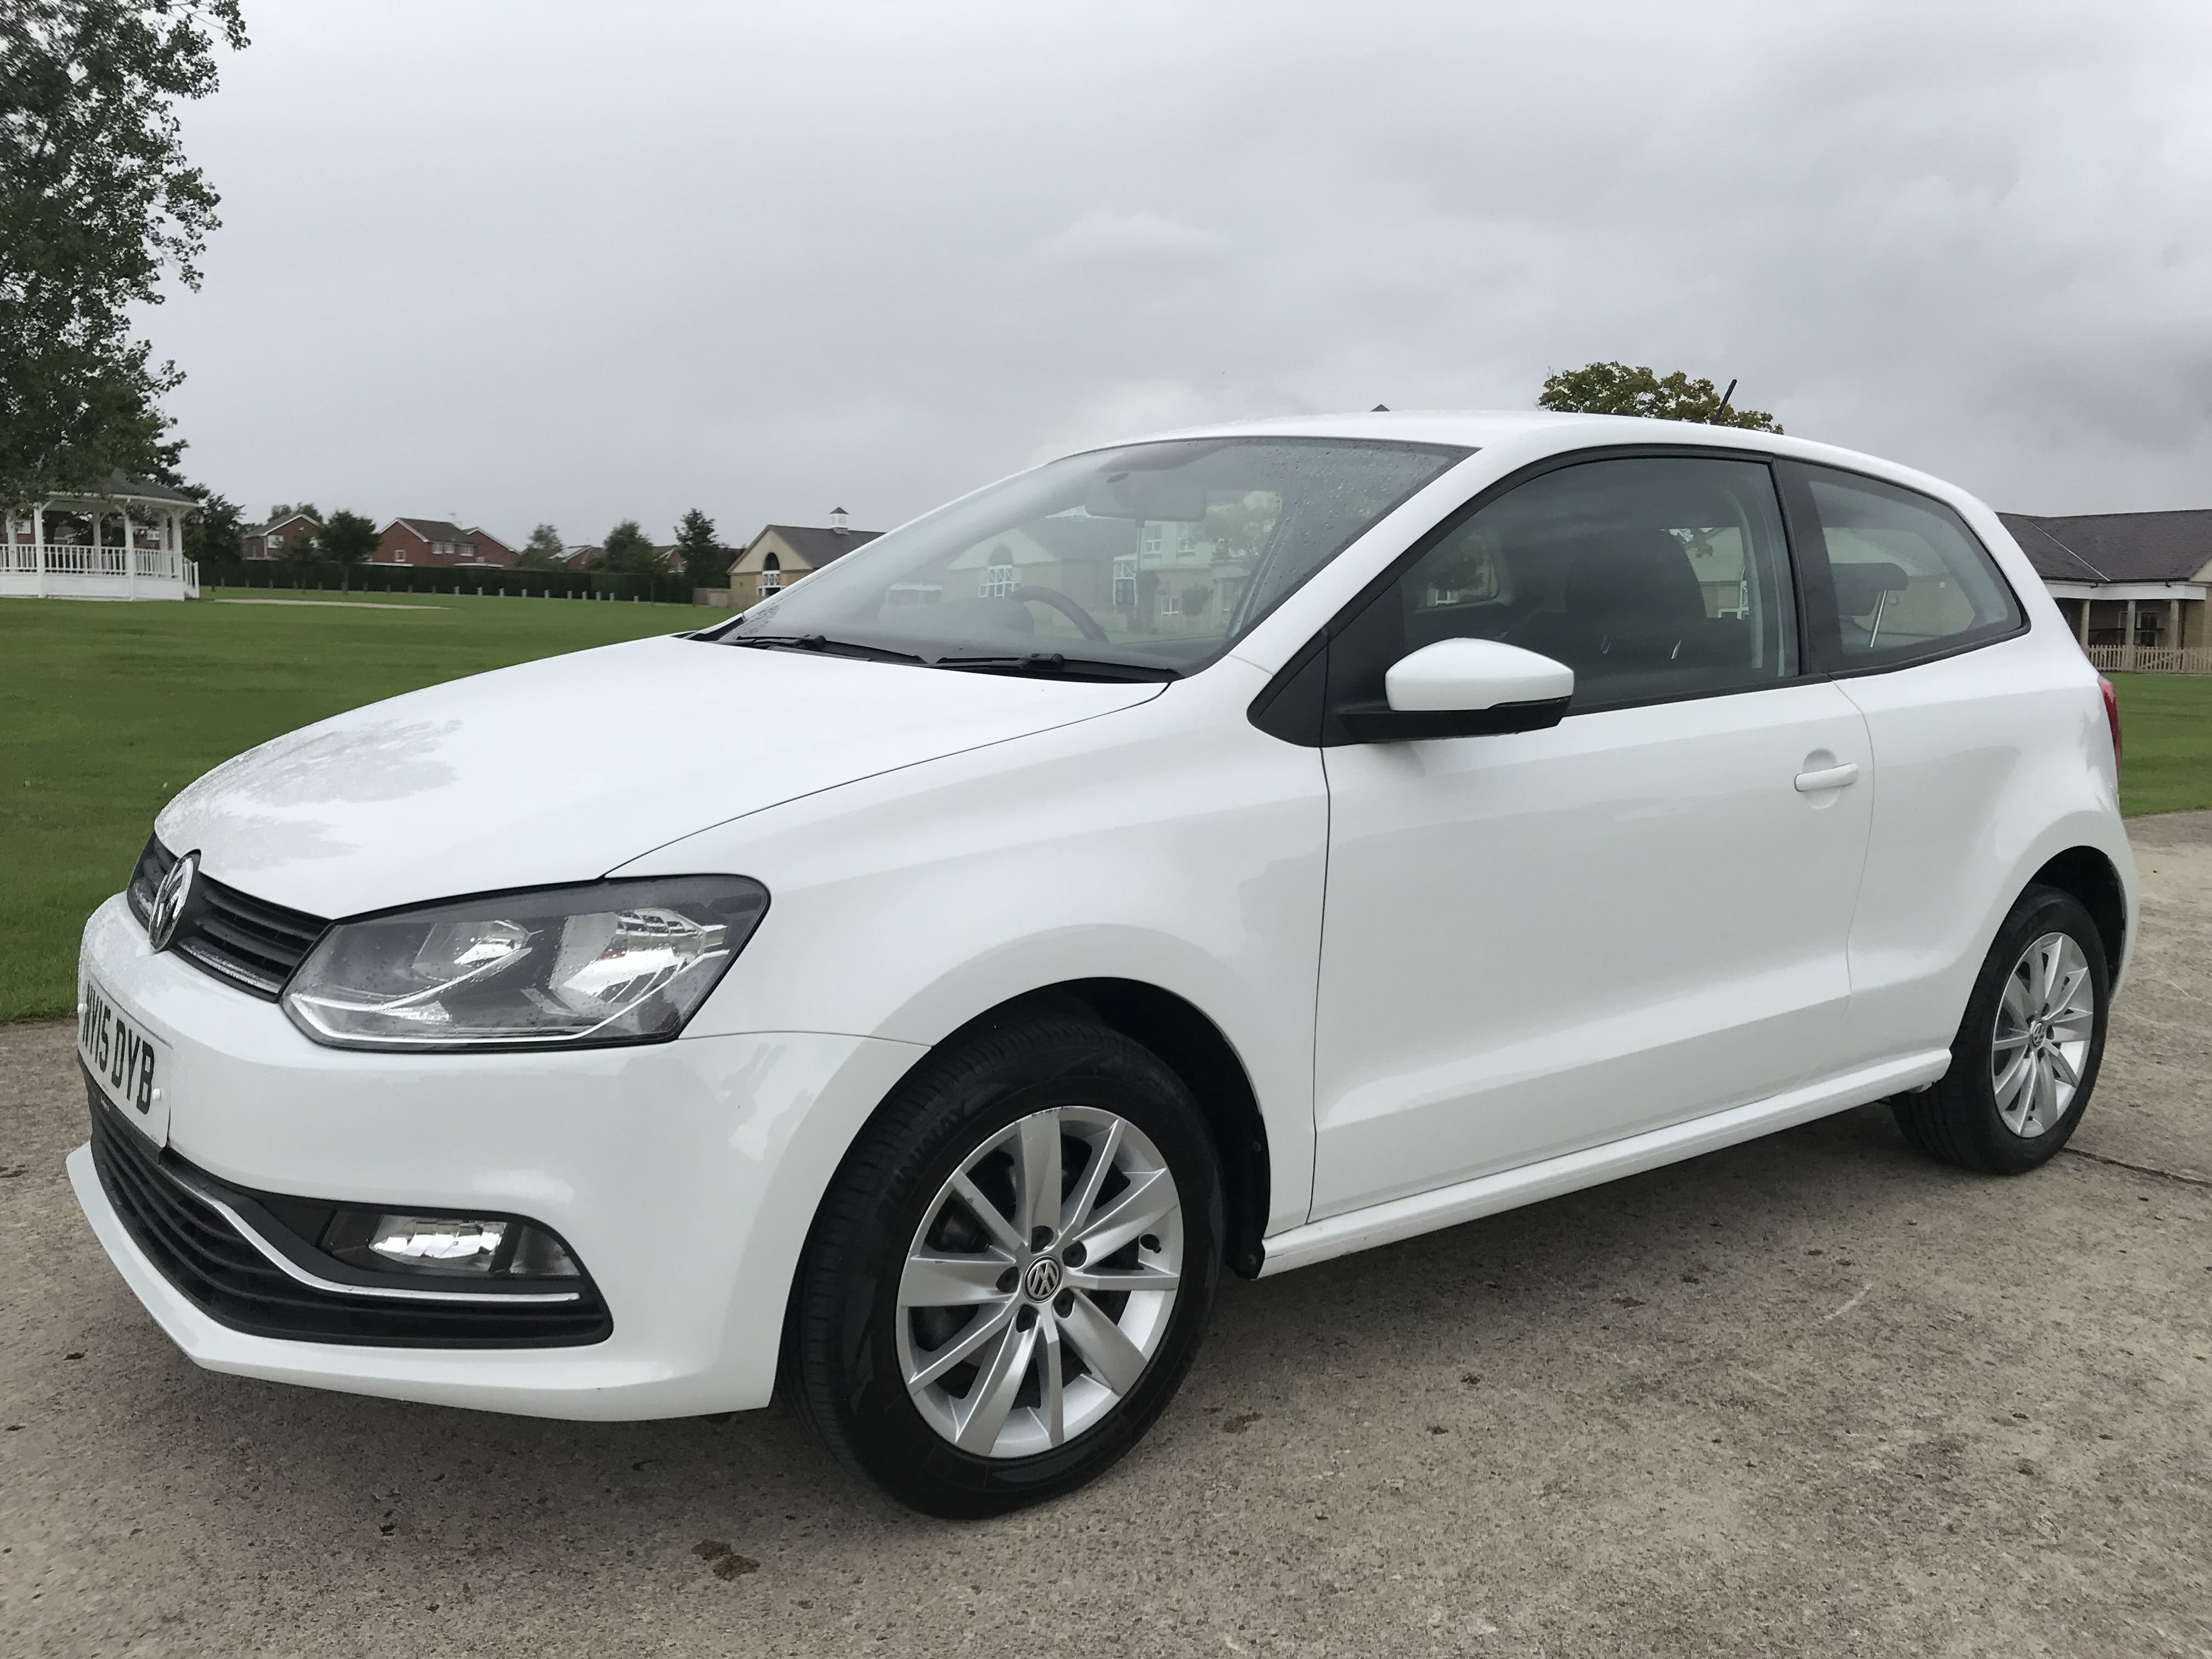 VOLKSWAGEN POLO 1-0 TSI BLUEMOTION TECH SE (SS) 3DR sold by S & C Car Sales Harrogate